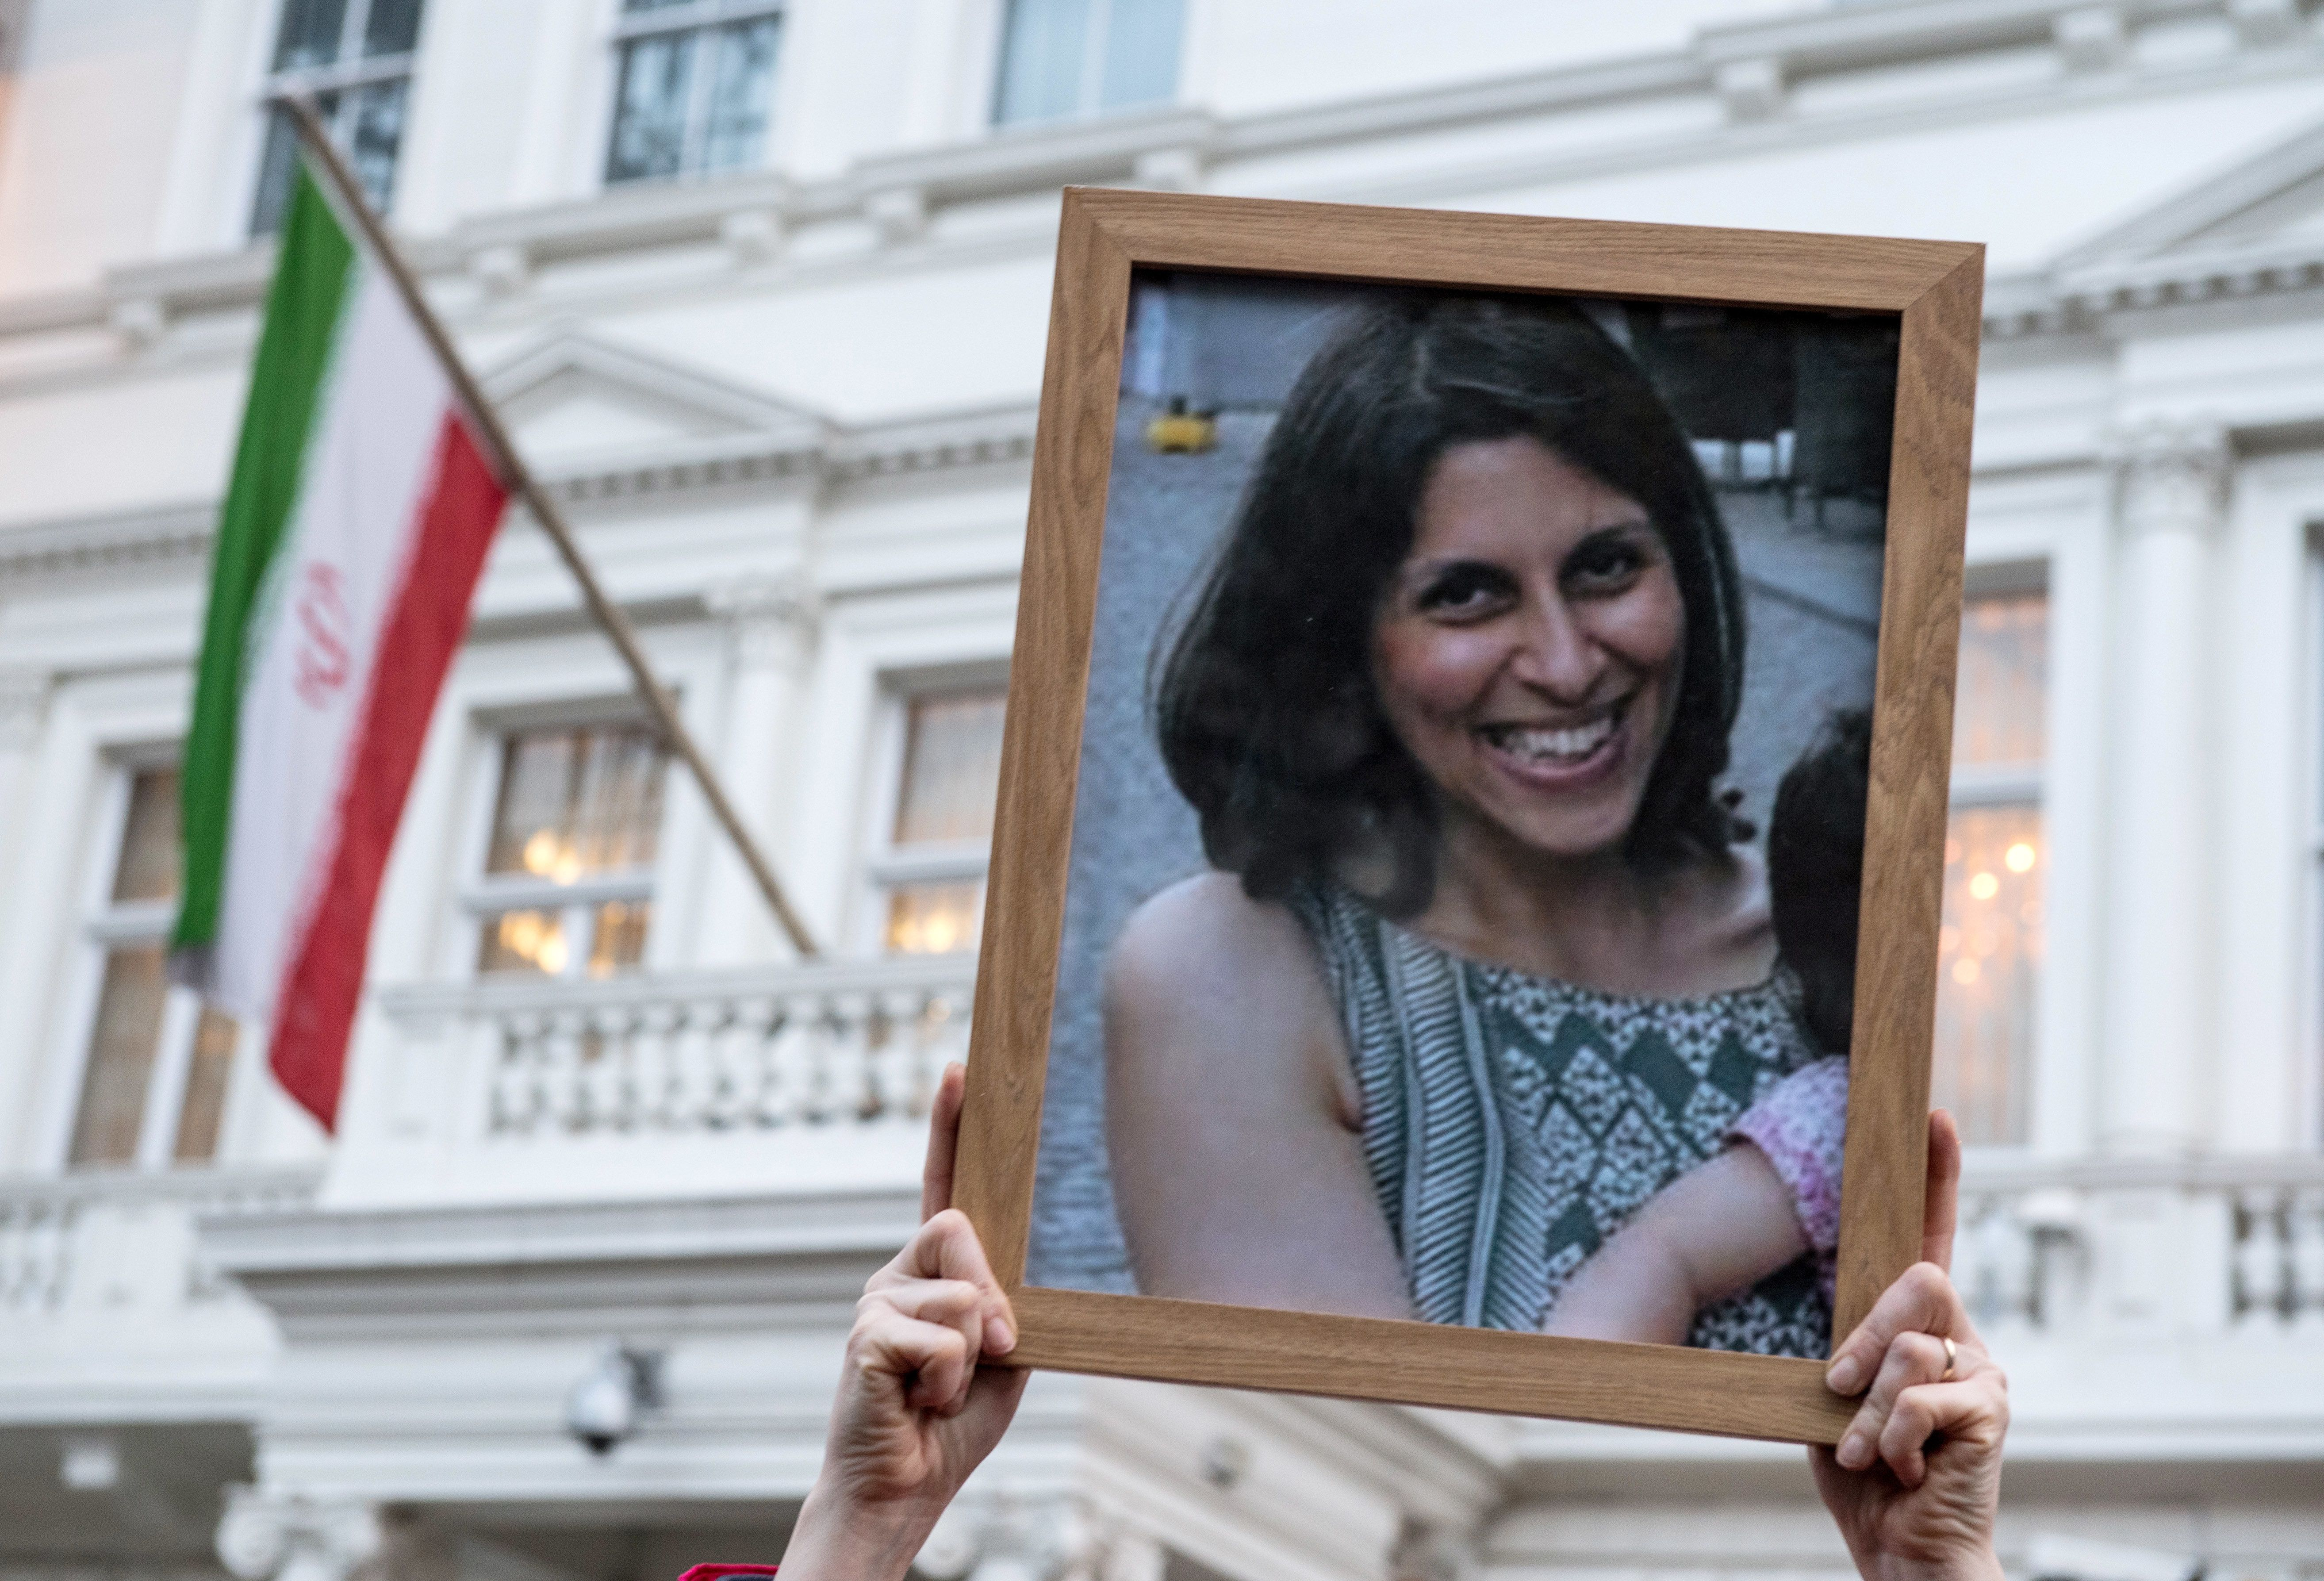 <strong>Zaghari-Ratcliffe&nbsp;has already been sentenced to five years in prison for 'propaganda against the regime'&nbsp;</strong>